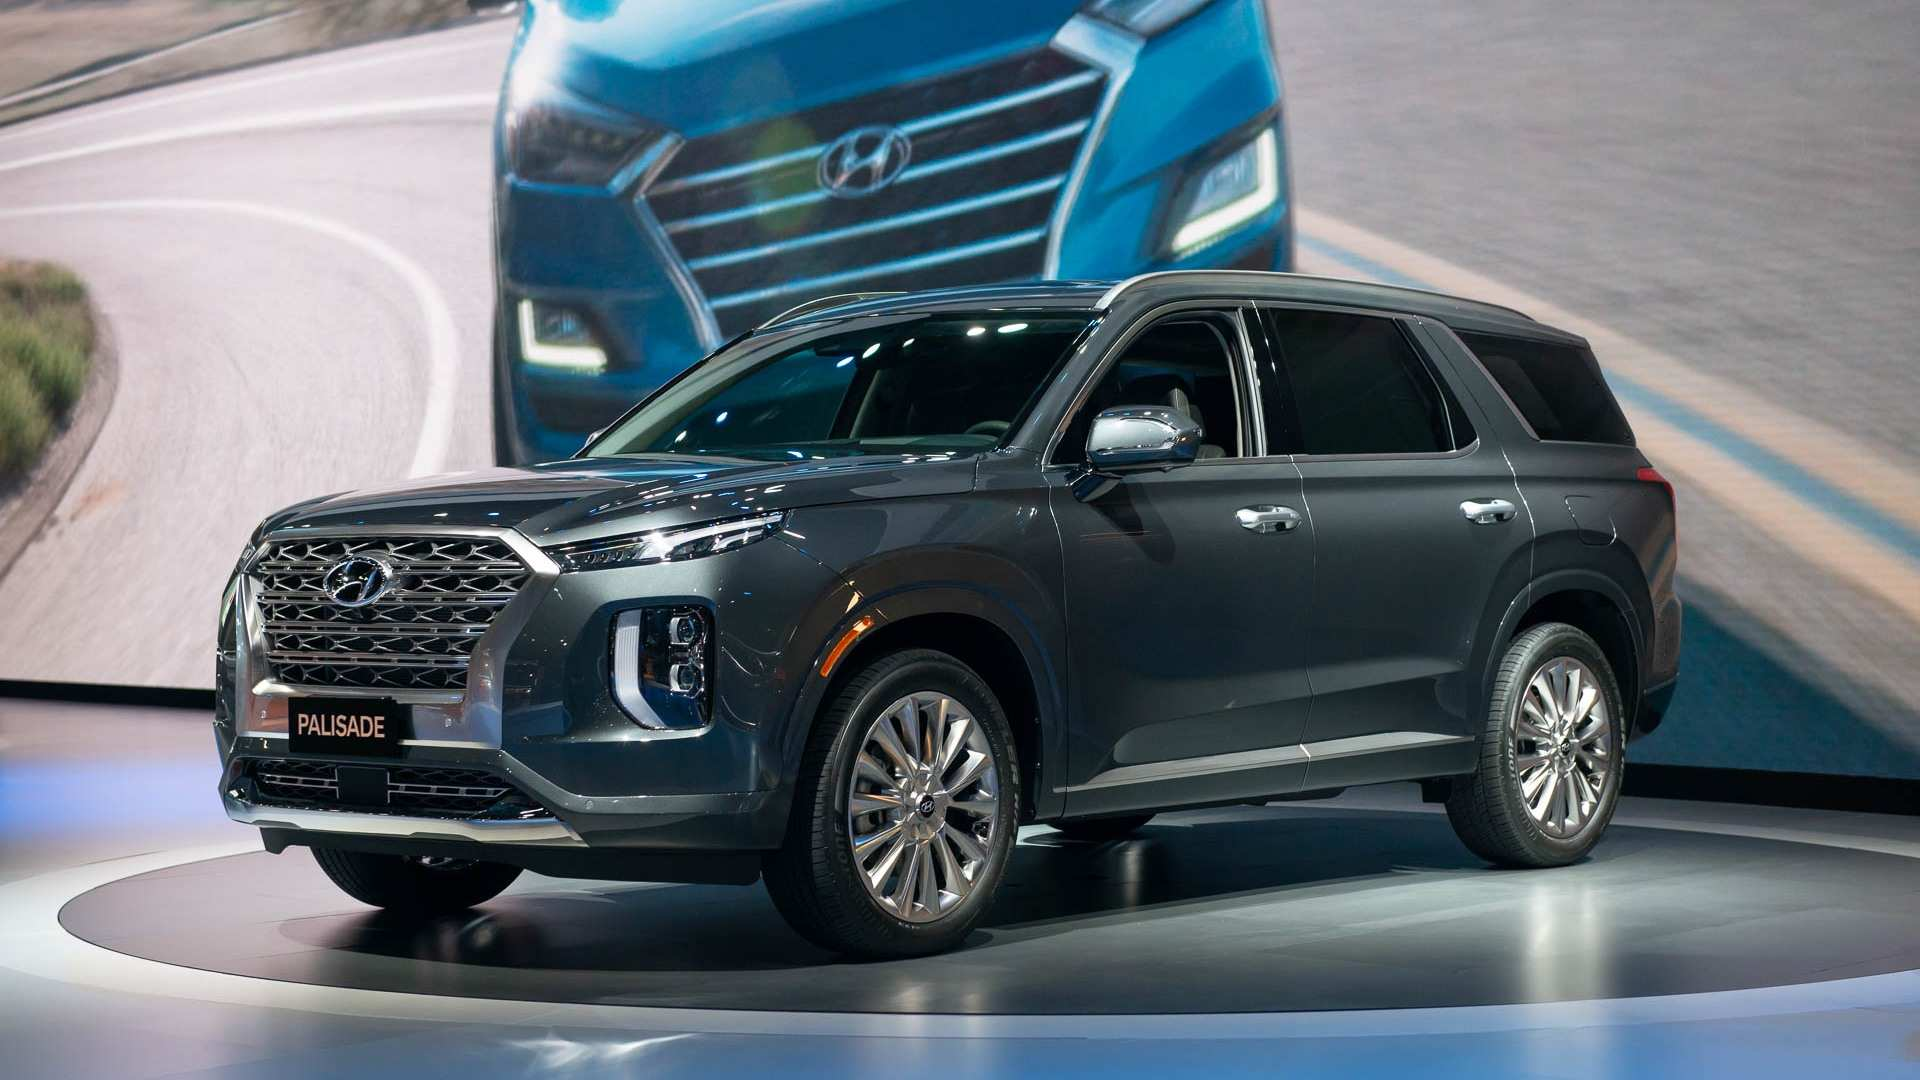 94 New When Will The 2020 Hyundai Palisade Be Available Spy Shoot by When Will The 2020 Hyundai Palisade Be Available